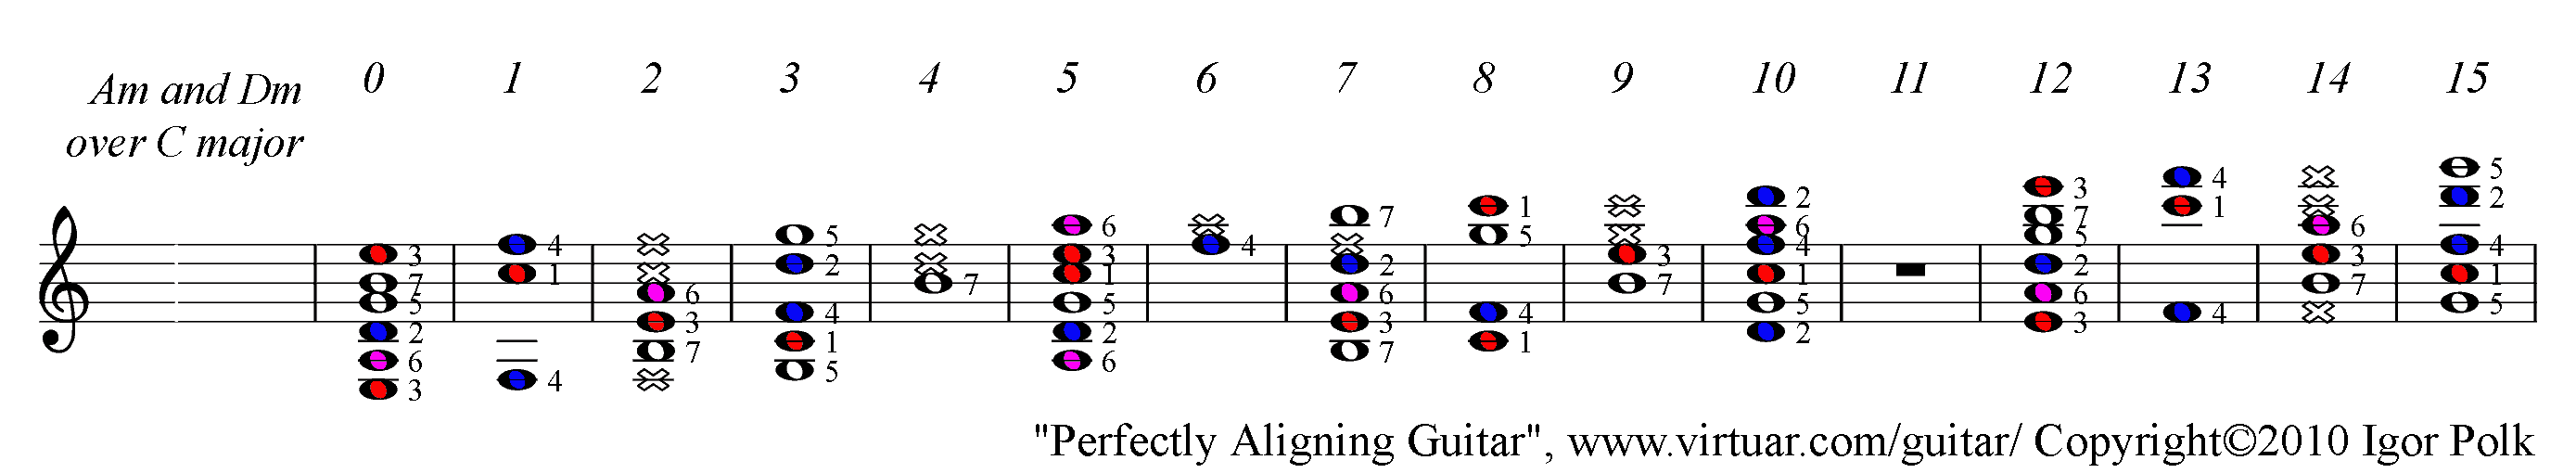 A Minor And D Minor Chords Over C Major Scale On Guitar